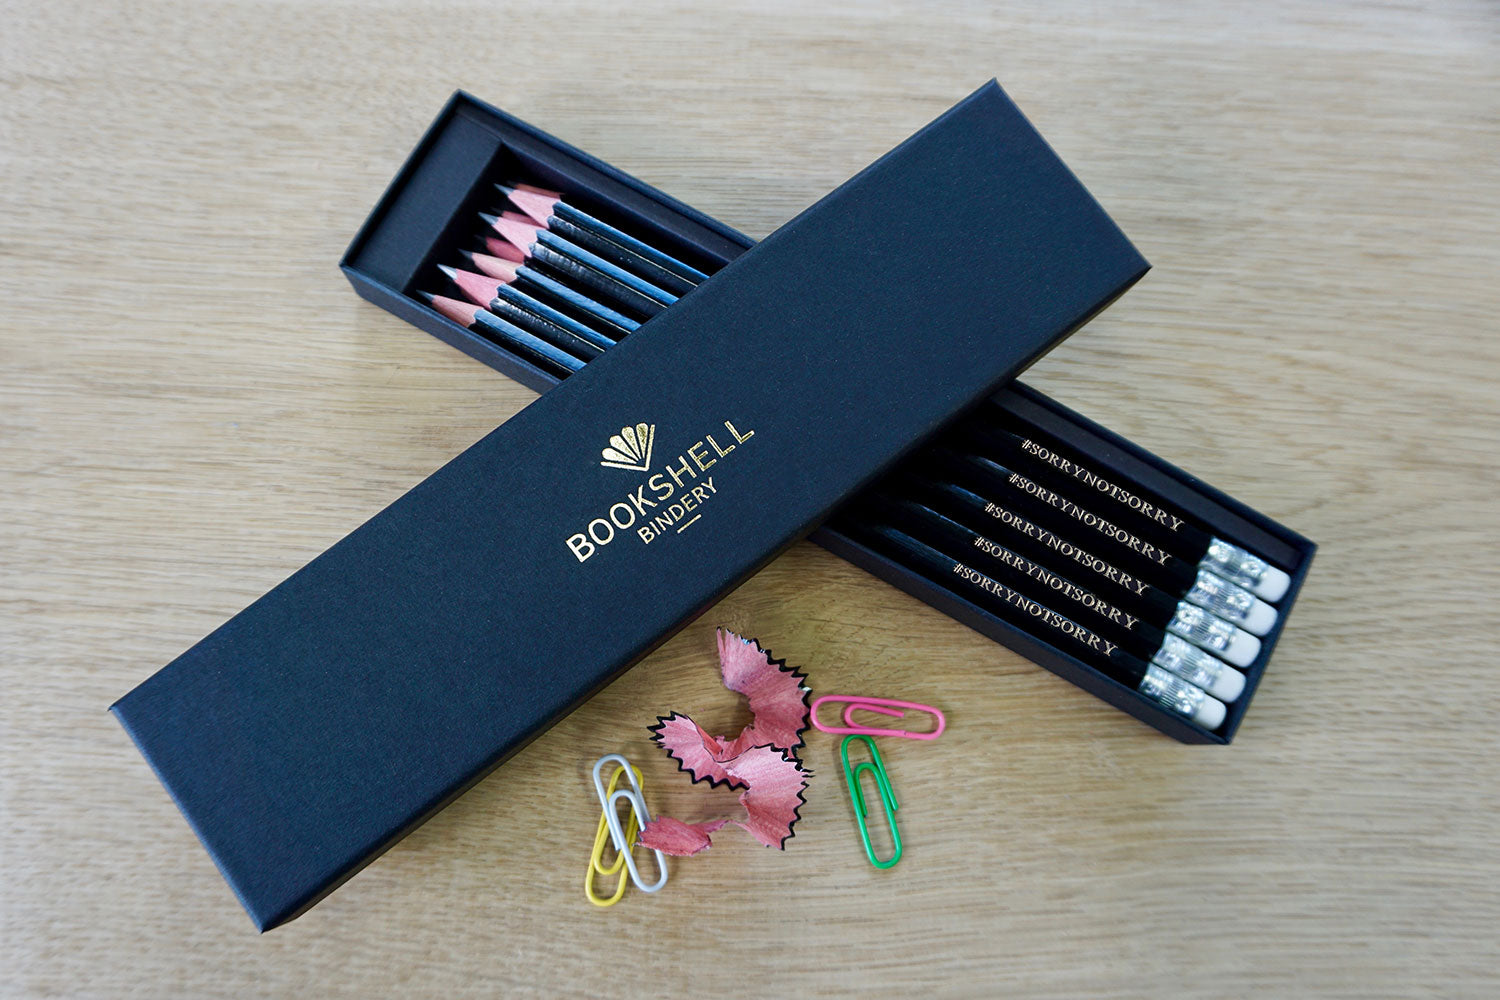 Engraved pencils from Bookshell